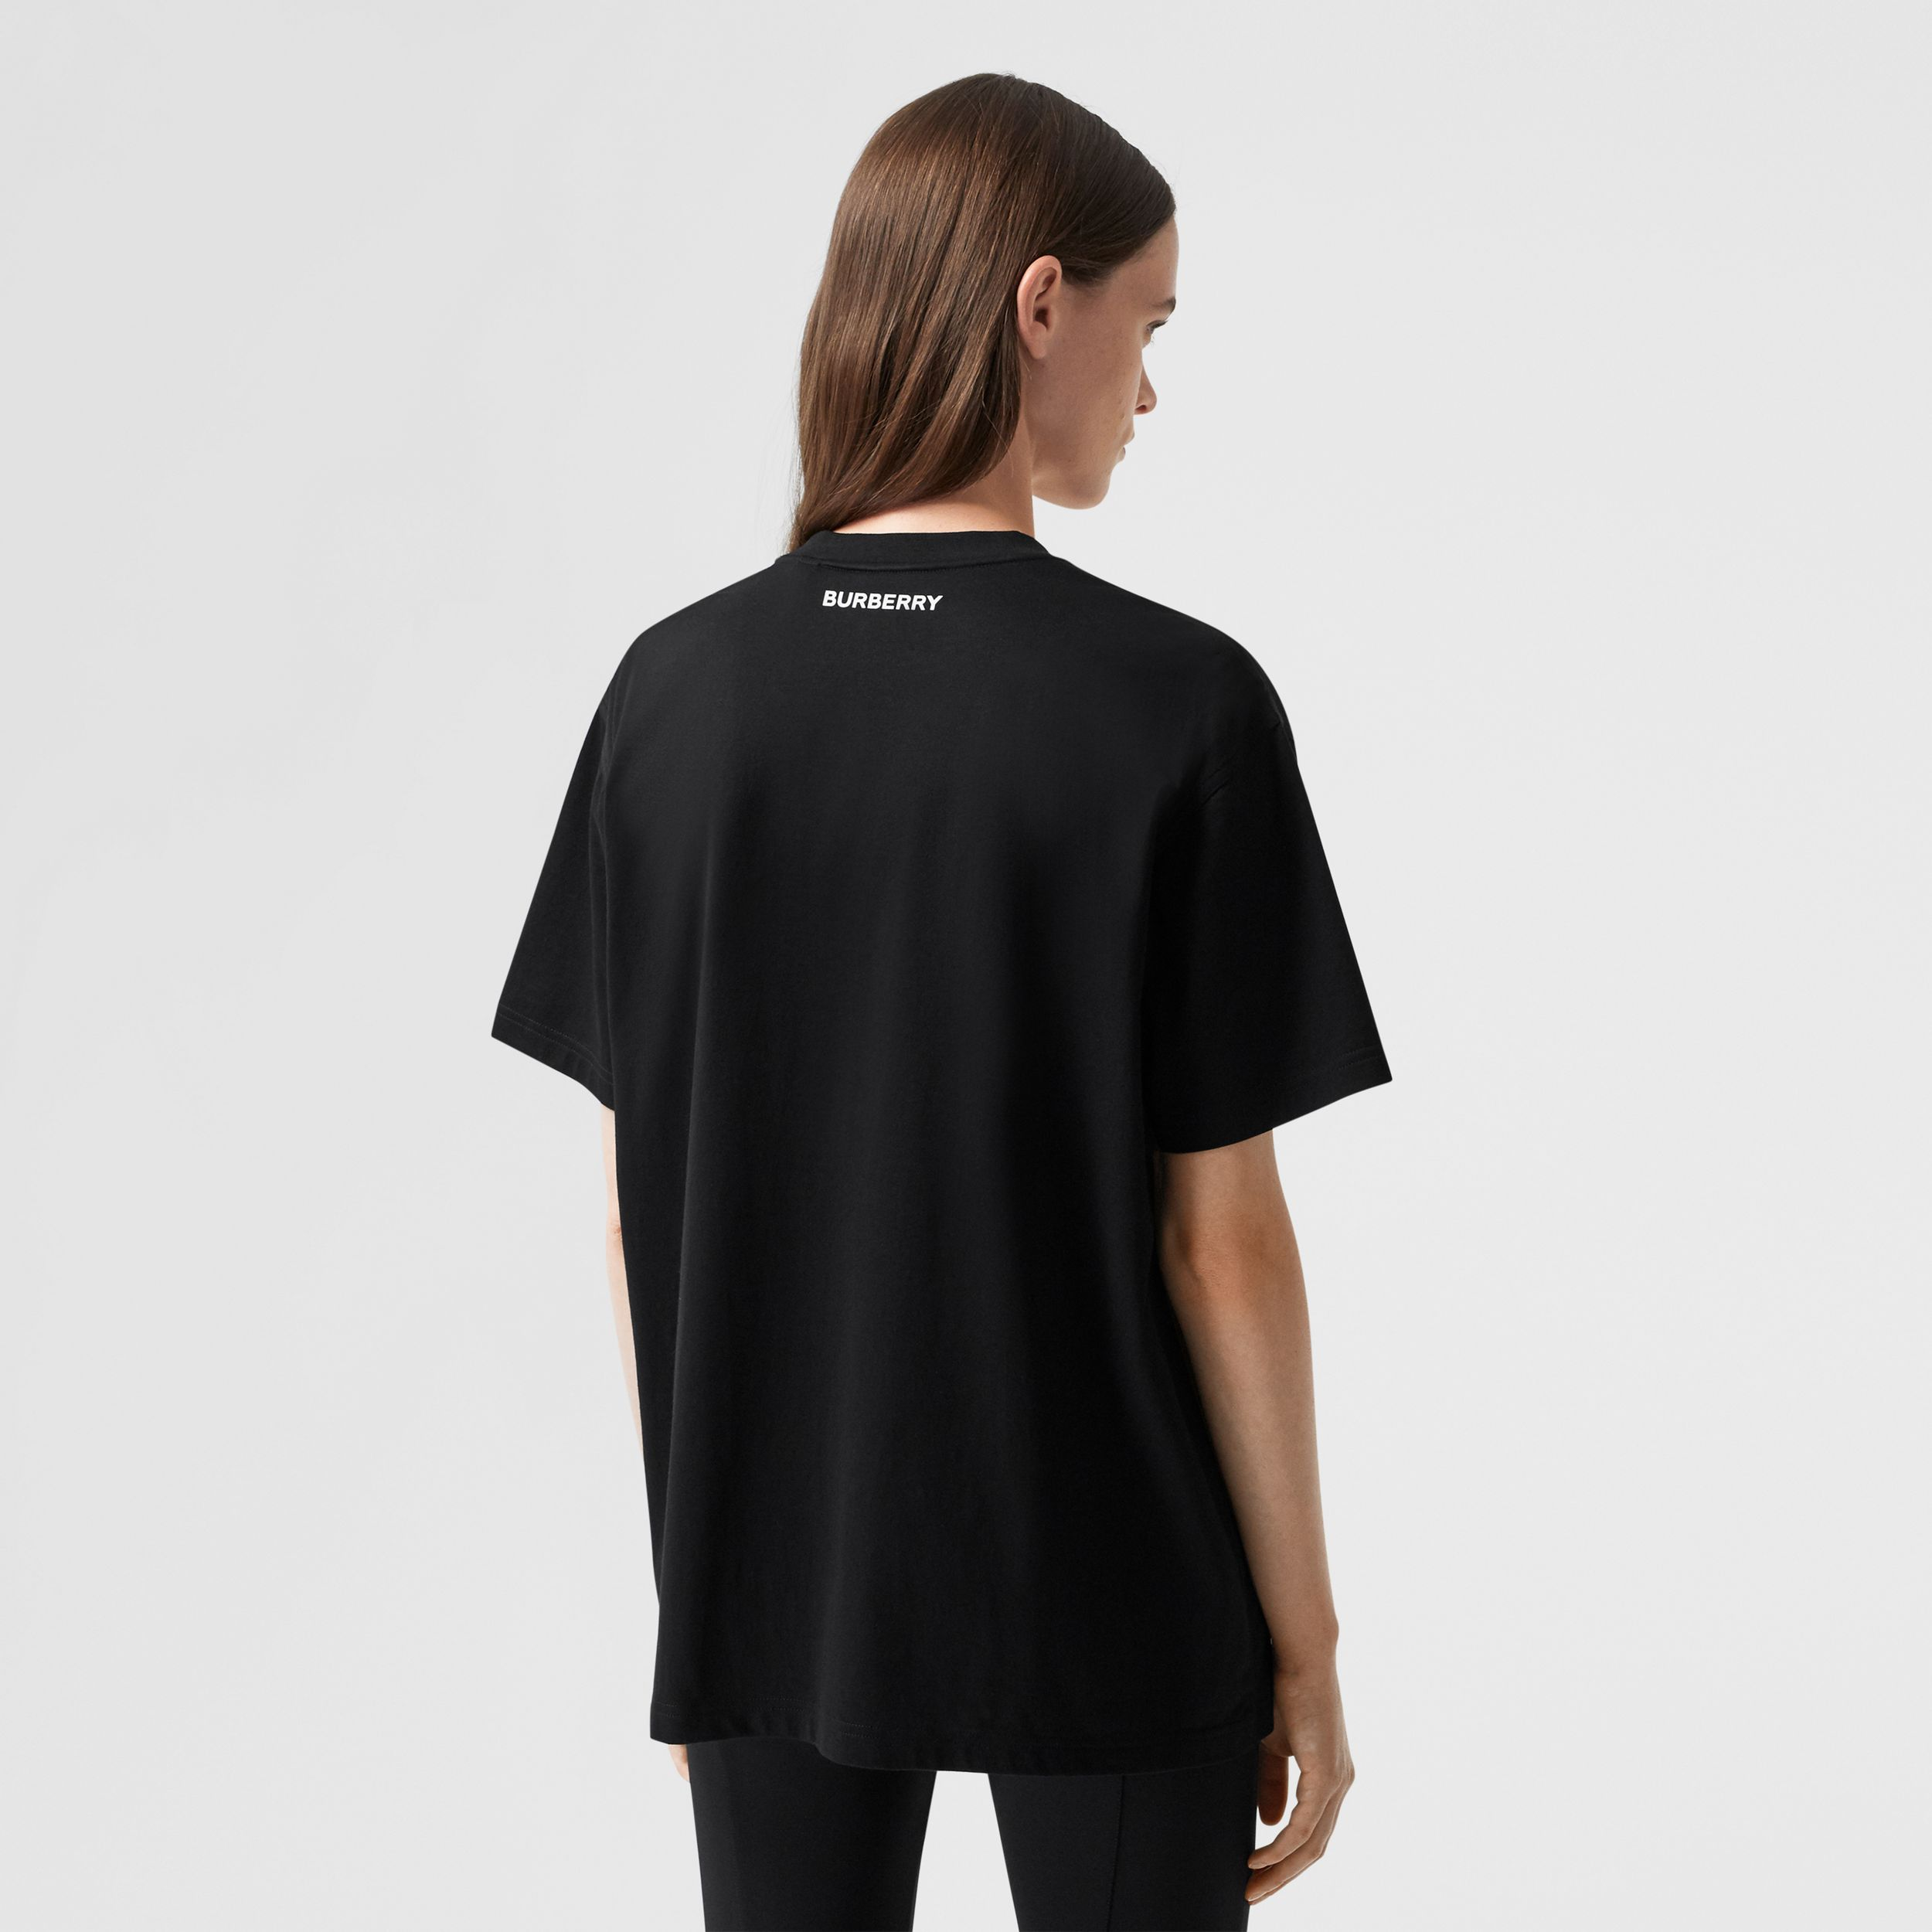 Slogan Print Cotton Oversized T-shirt in Black - Women | Burberry Hong Kong S.A.R. - 3